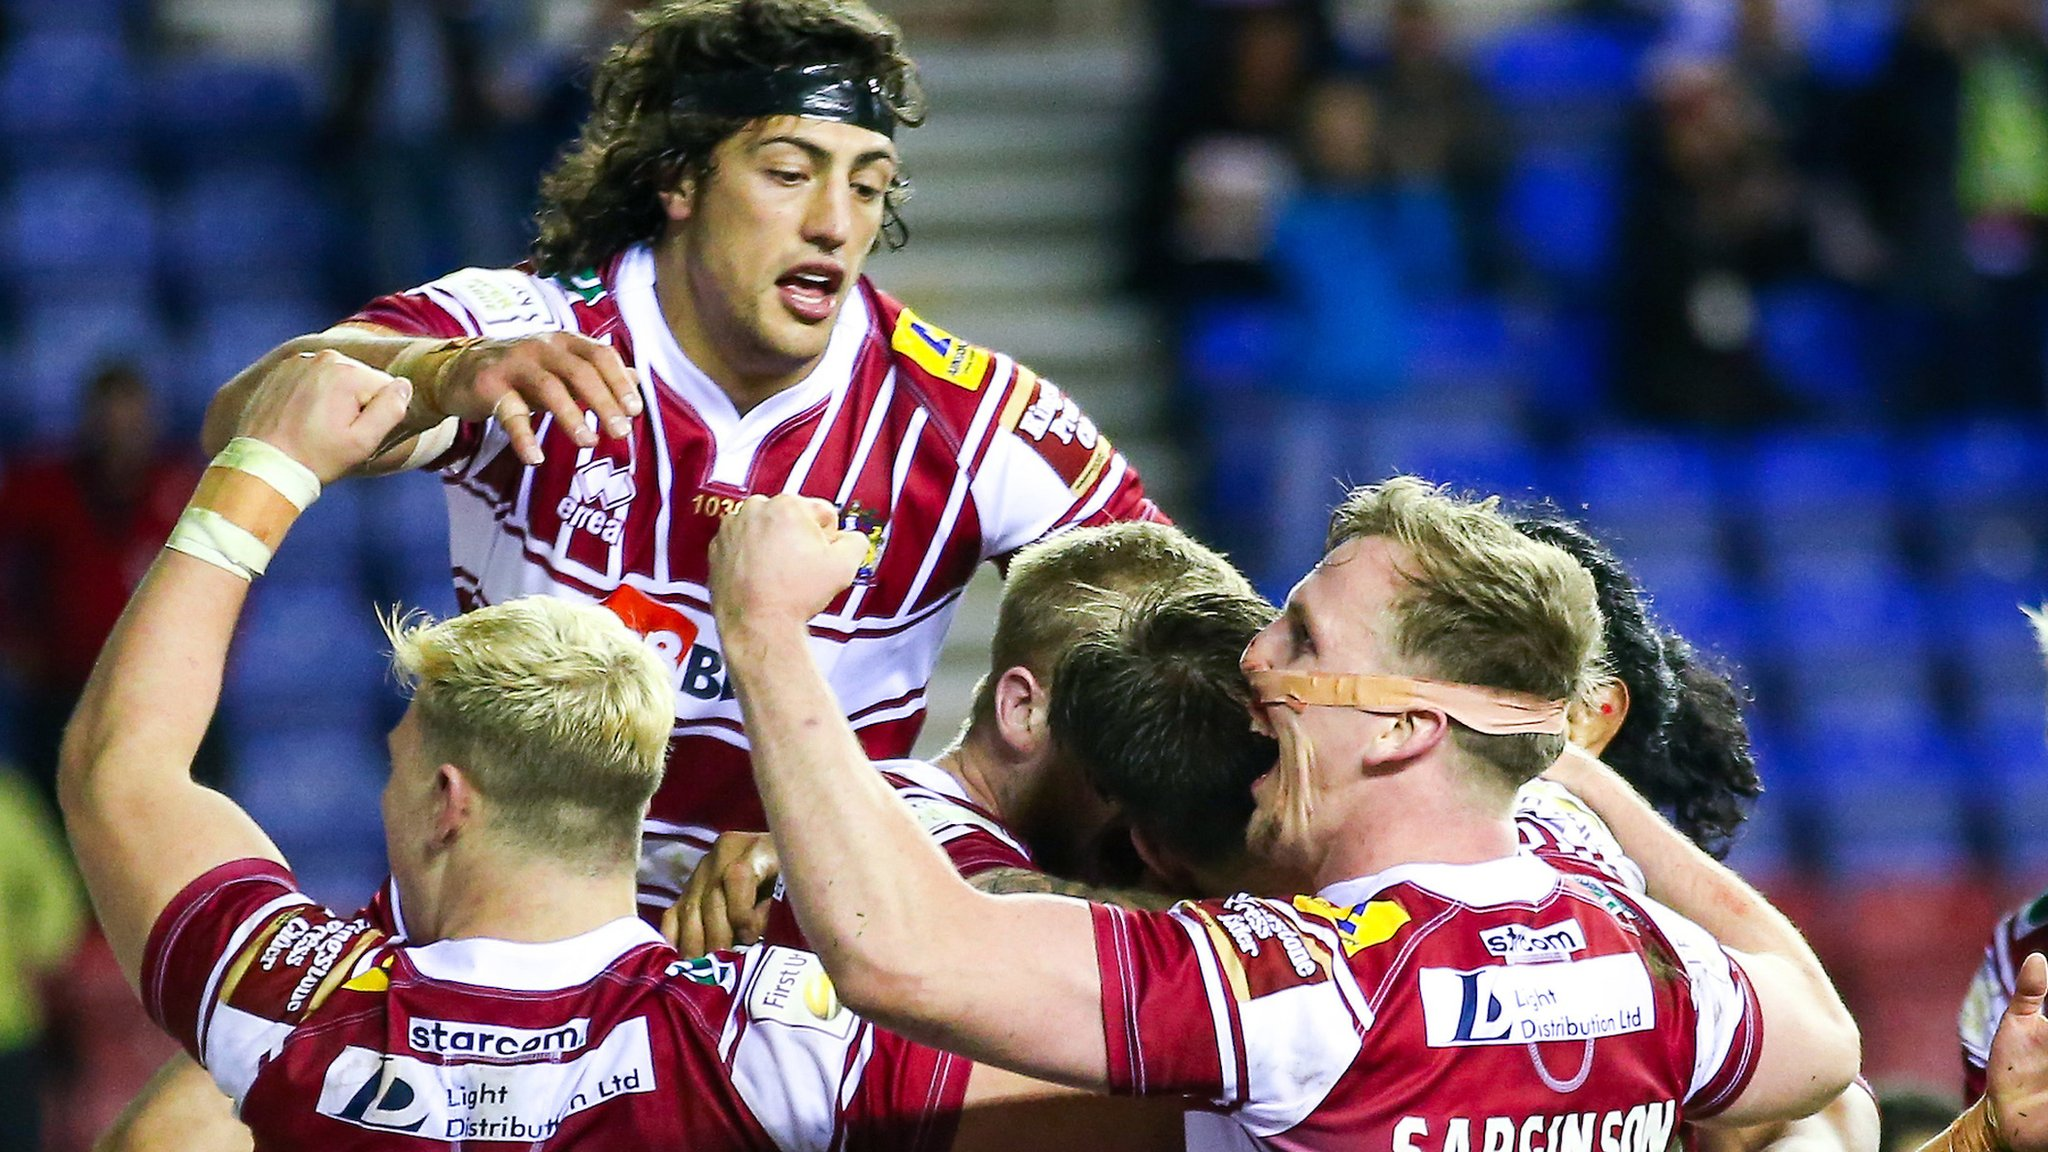 Wigan beat Hull to book Grand Final place